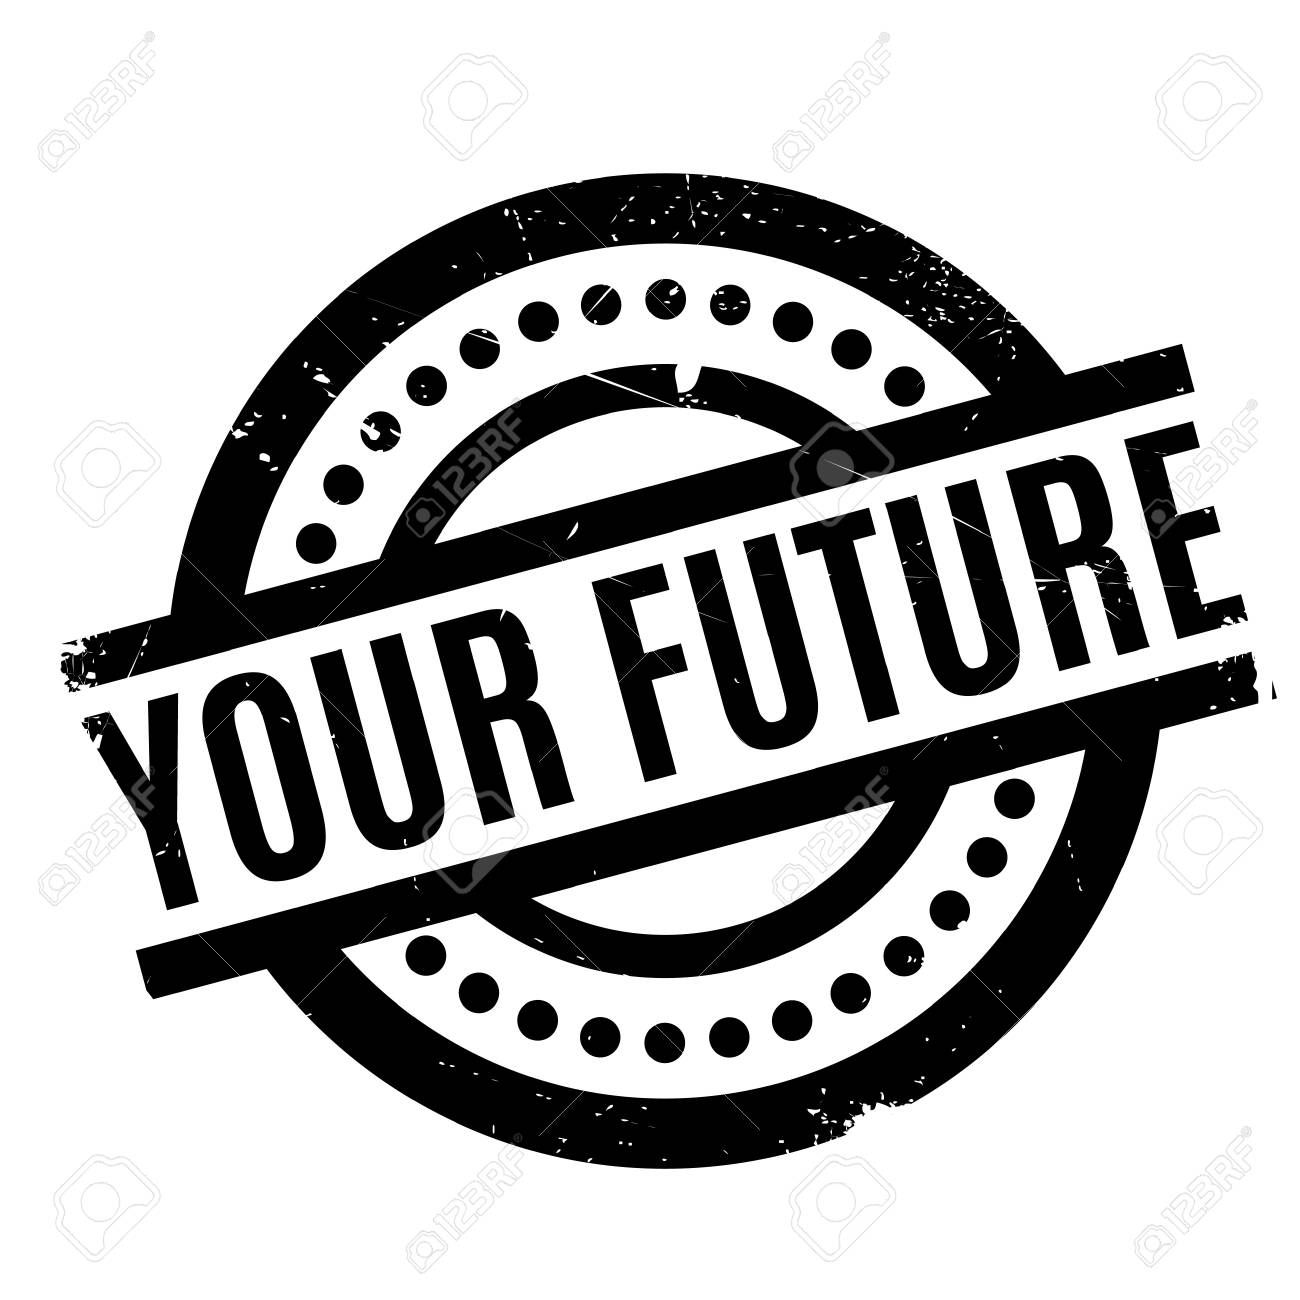 your future rubber stamp grunge design with dust scratches rh 123rf com High School Graduation Clip Art Backgrounds High School Graduation Clip Art Backgrounds